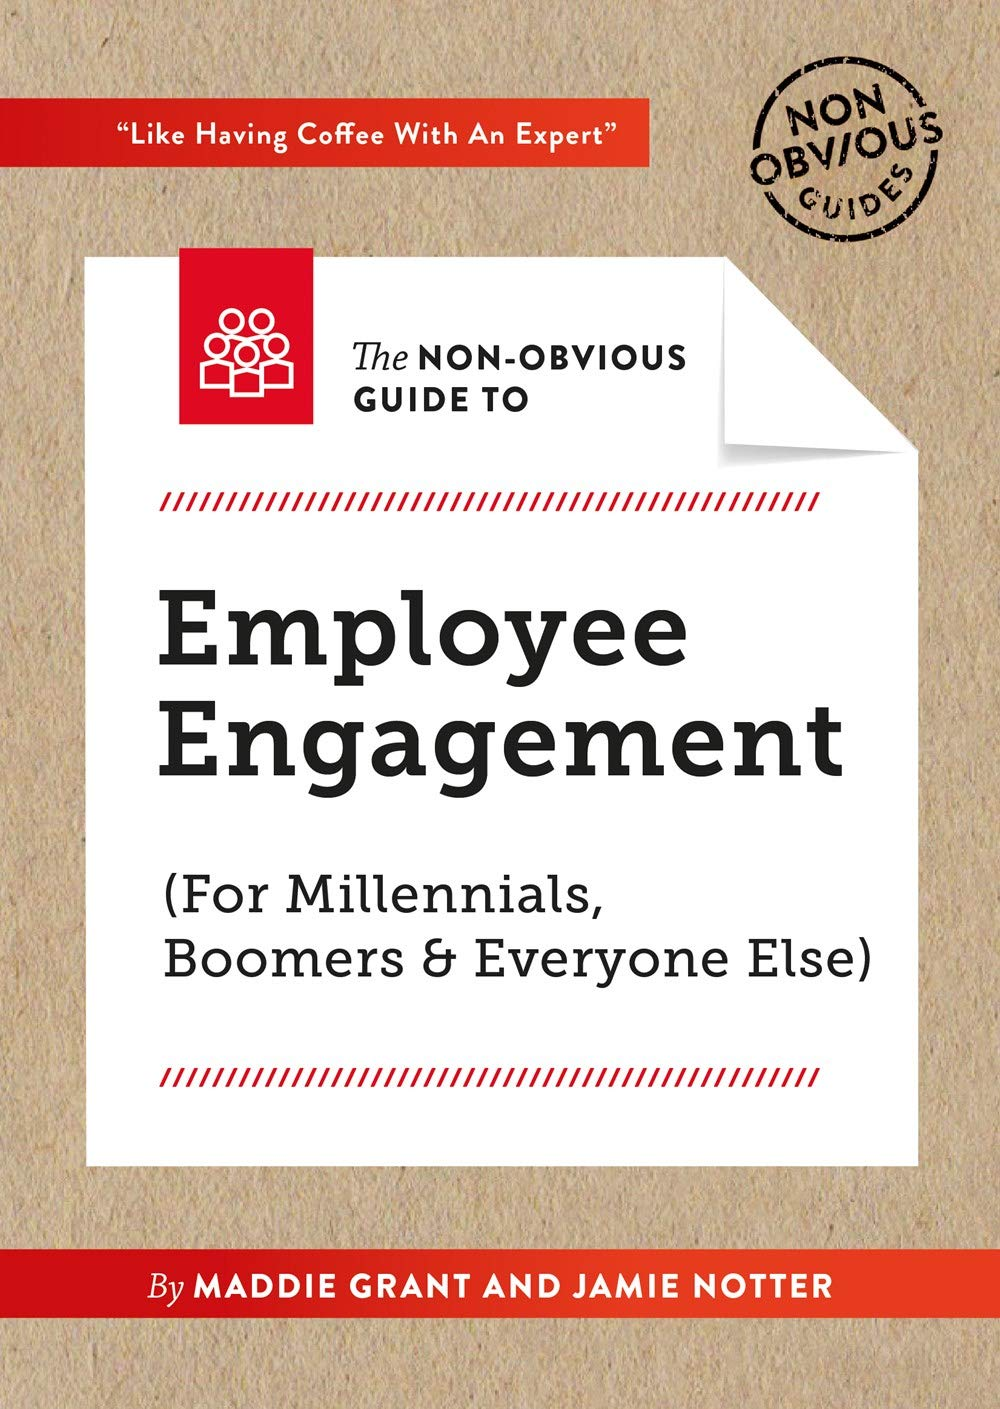 Download Ebook The Non-Obvious Guide To Employee Engagement (For Millennials, Boomers And Everyone Else) (Non-Obvious Guides (2))